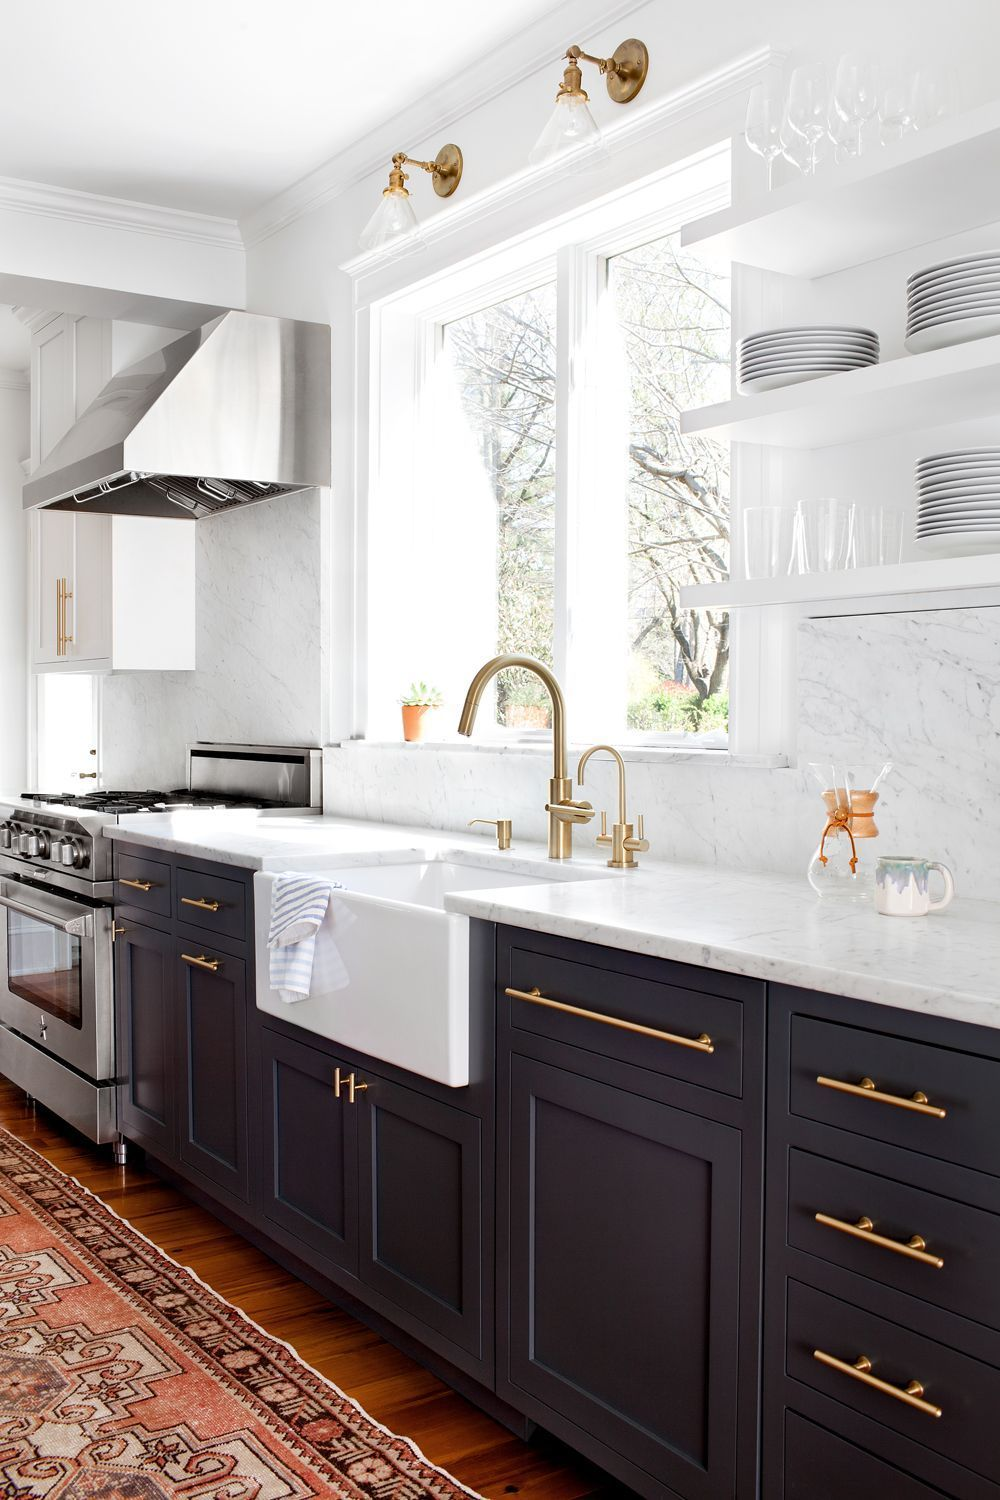 Browse photos of modern kitchen designs Discover